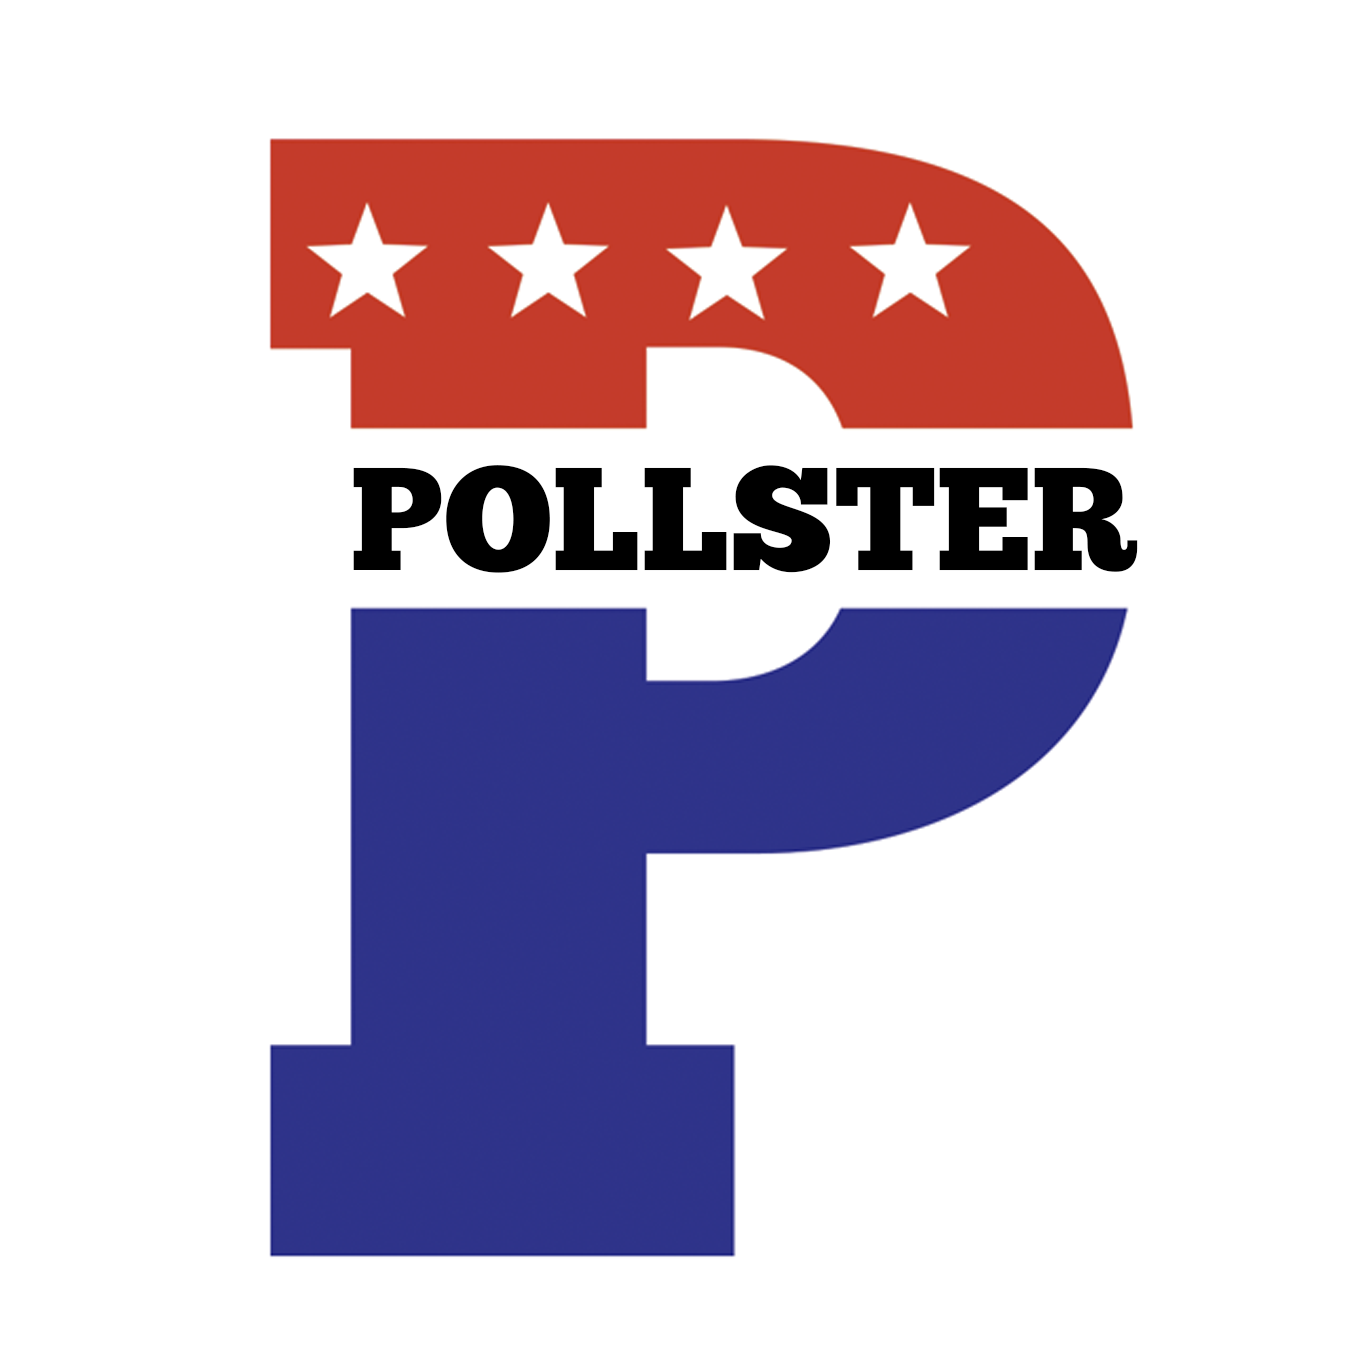 how to become a pollster